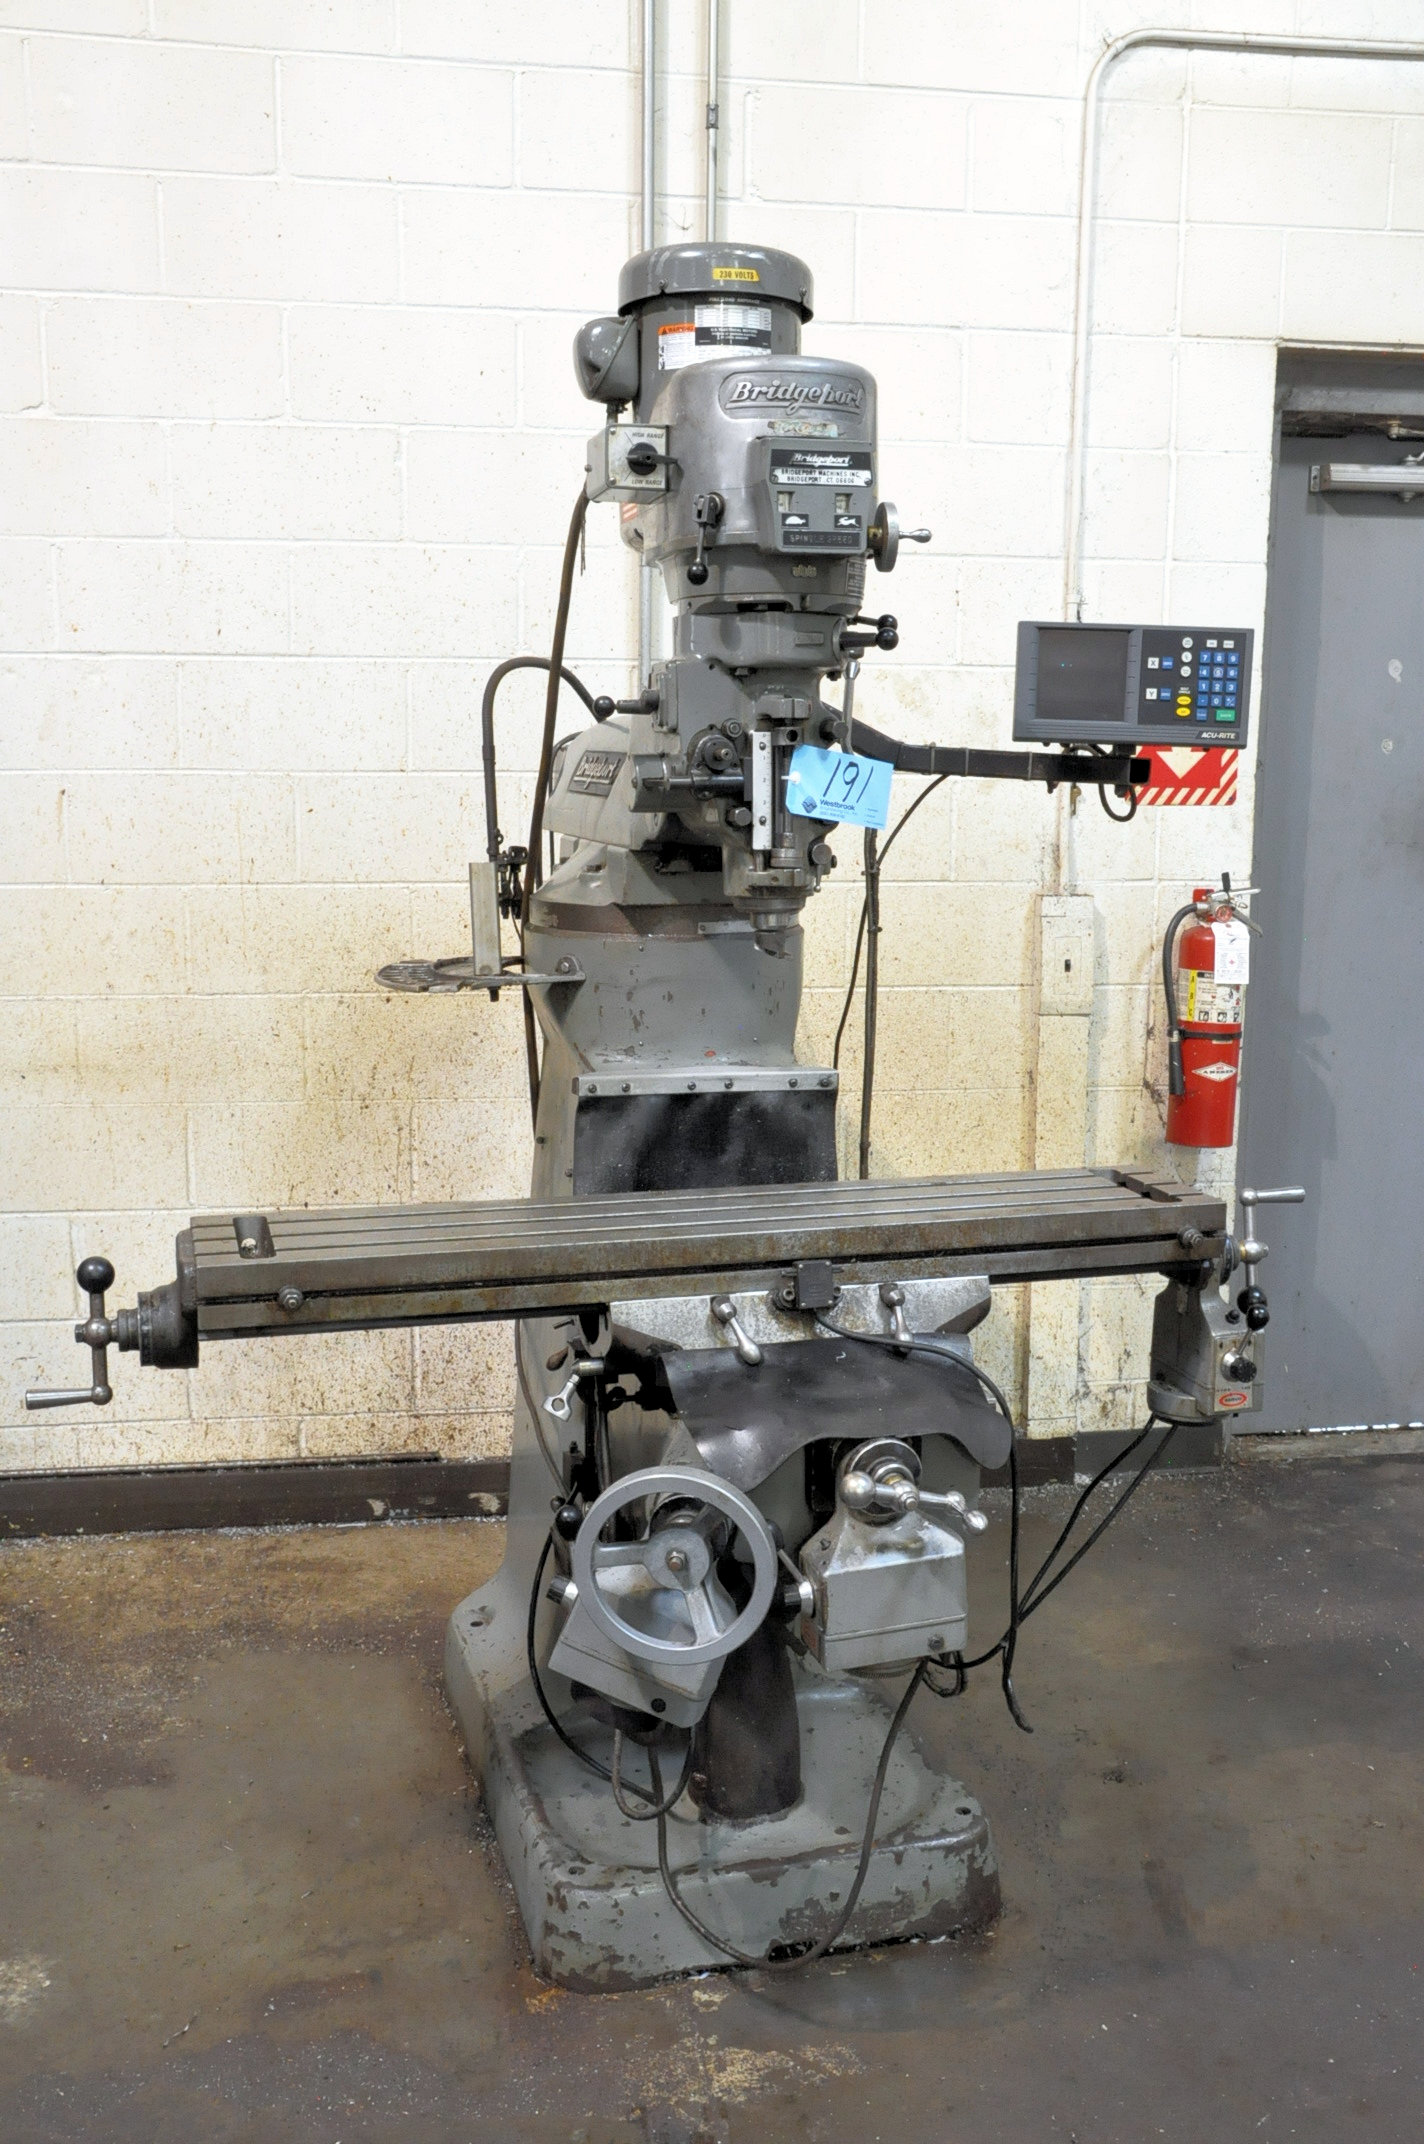 Bridgeport 2-HP Variable Speed Vertical Milling Machine, 2-Axis Readouts, X, Y and Knee Powered Feed - Image 2 of 6